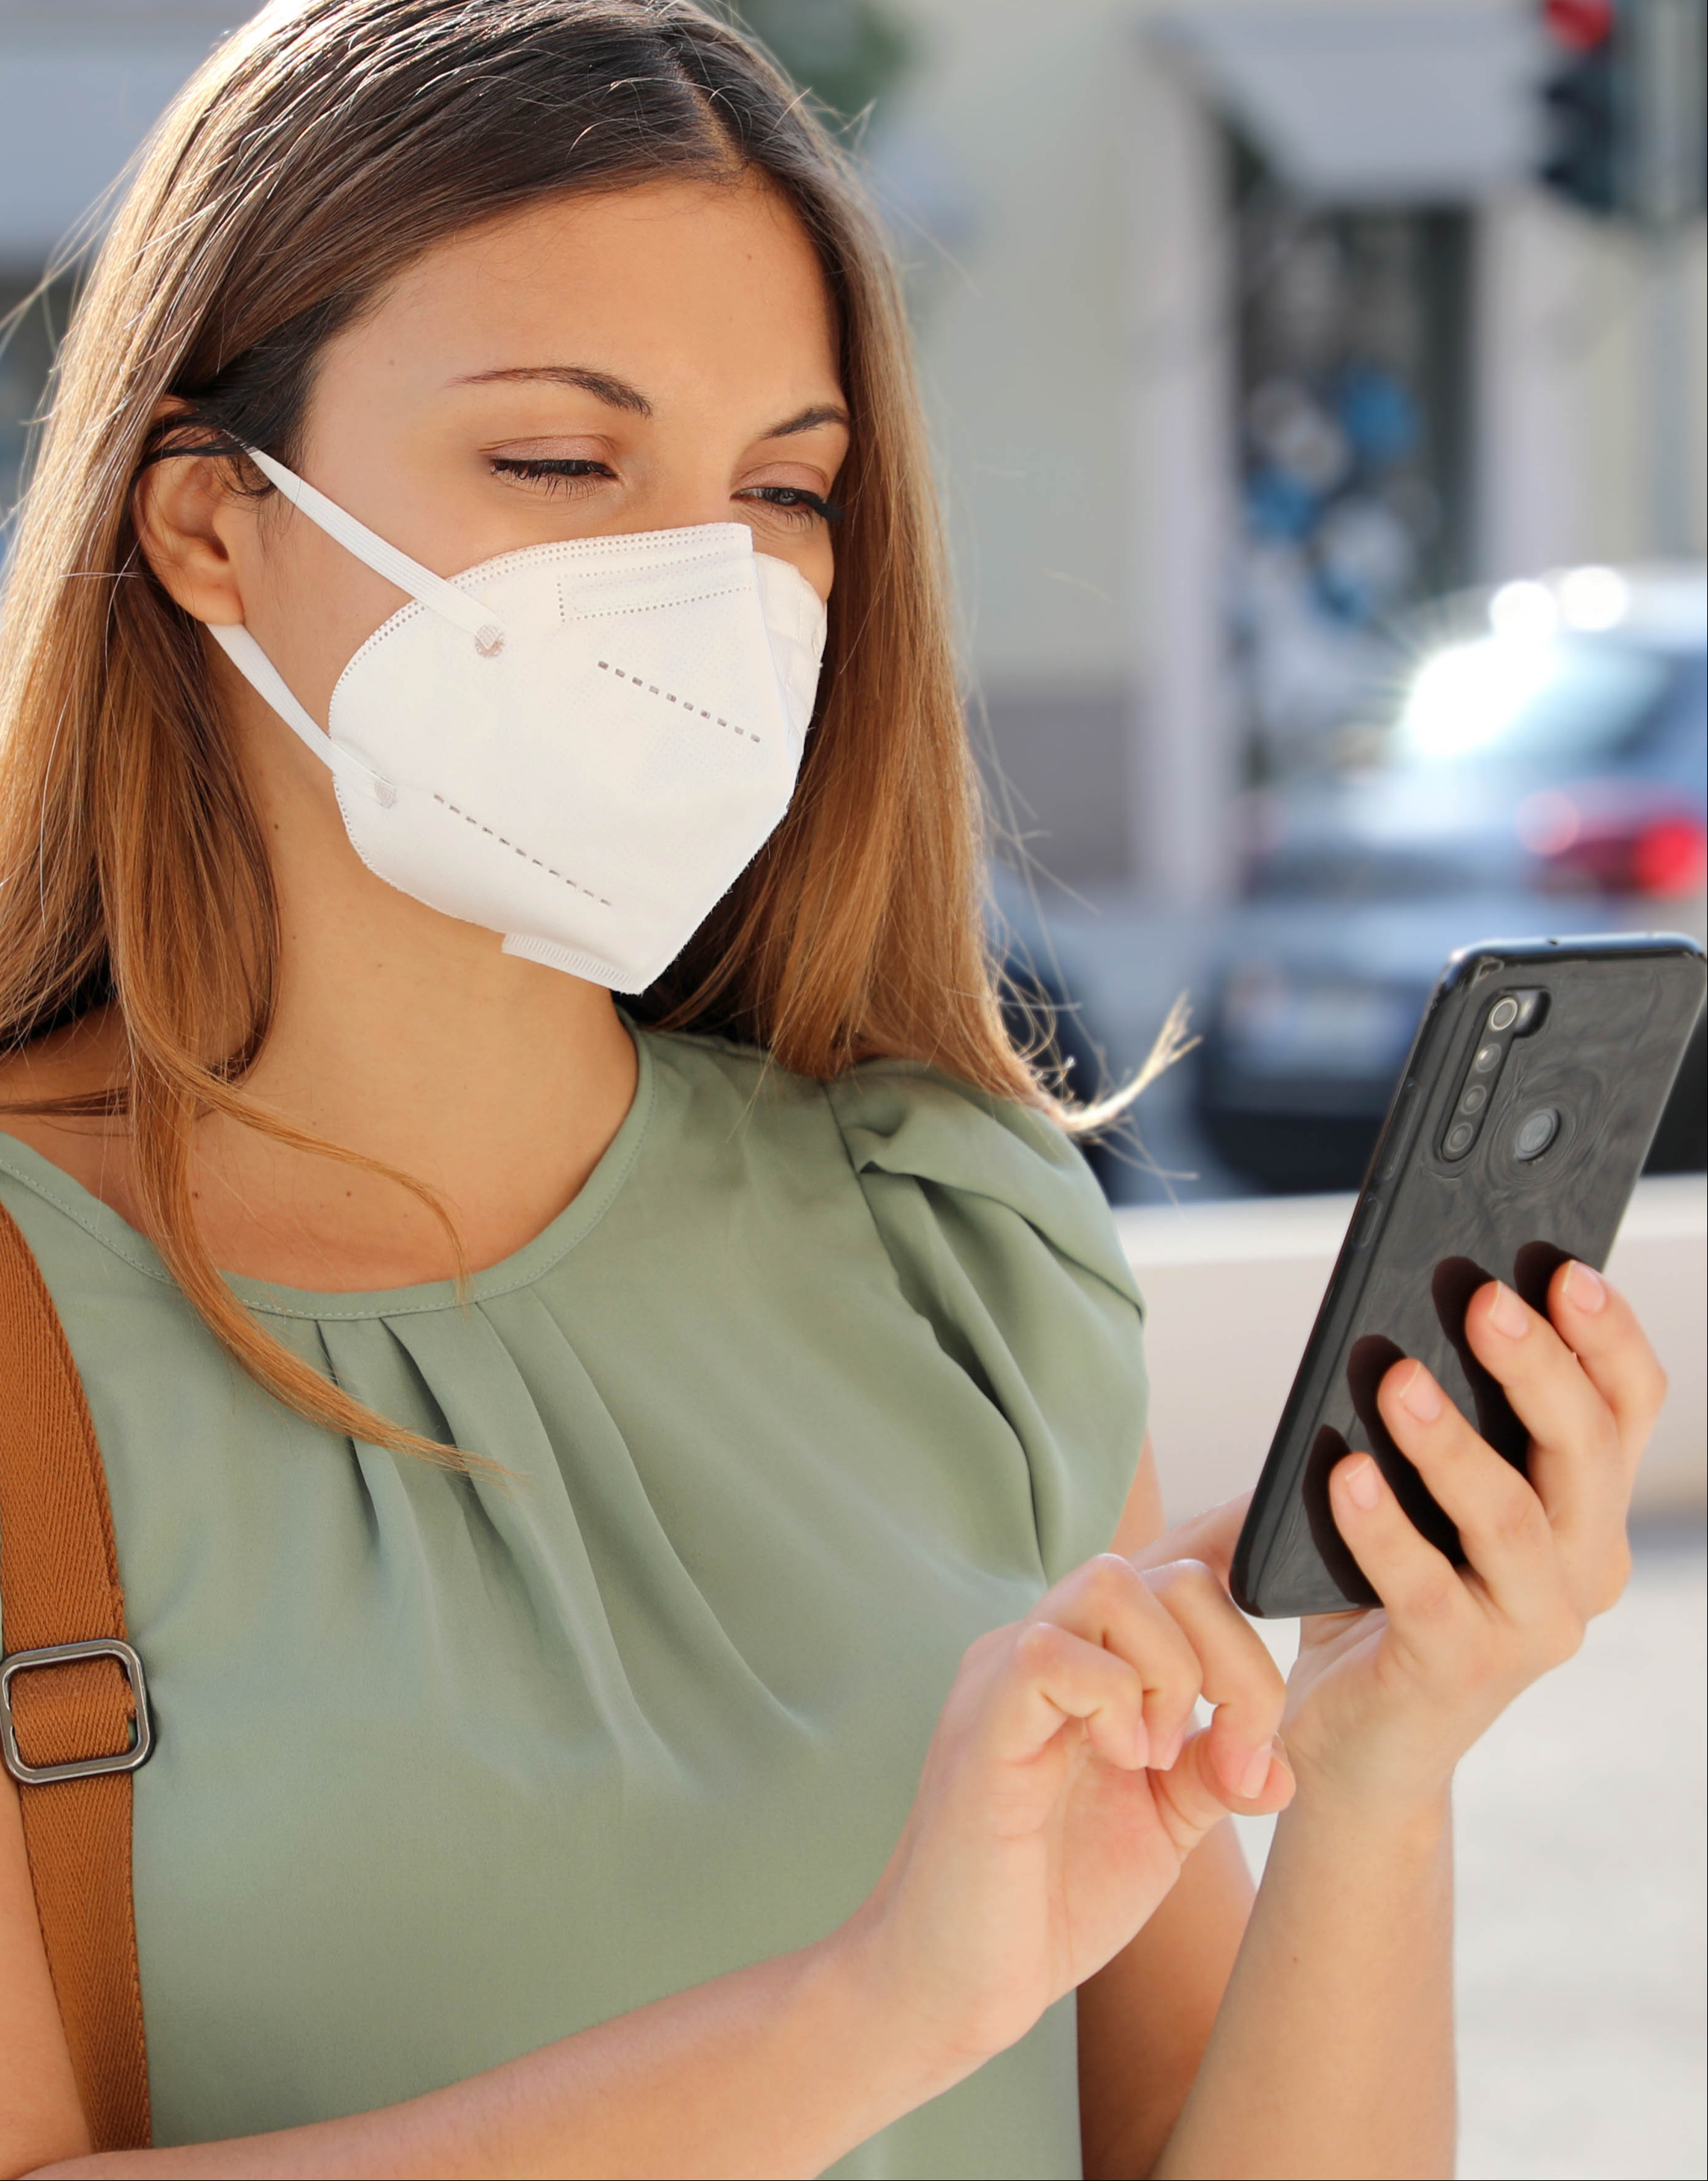 Image: woman wearing facemask using a mobile app